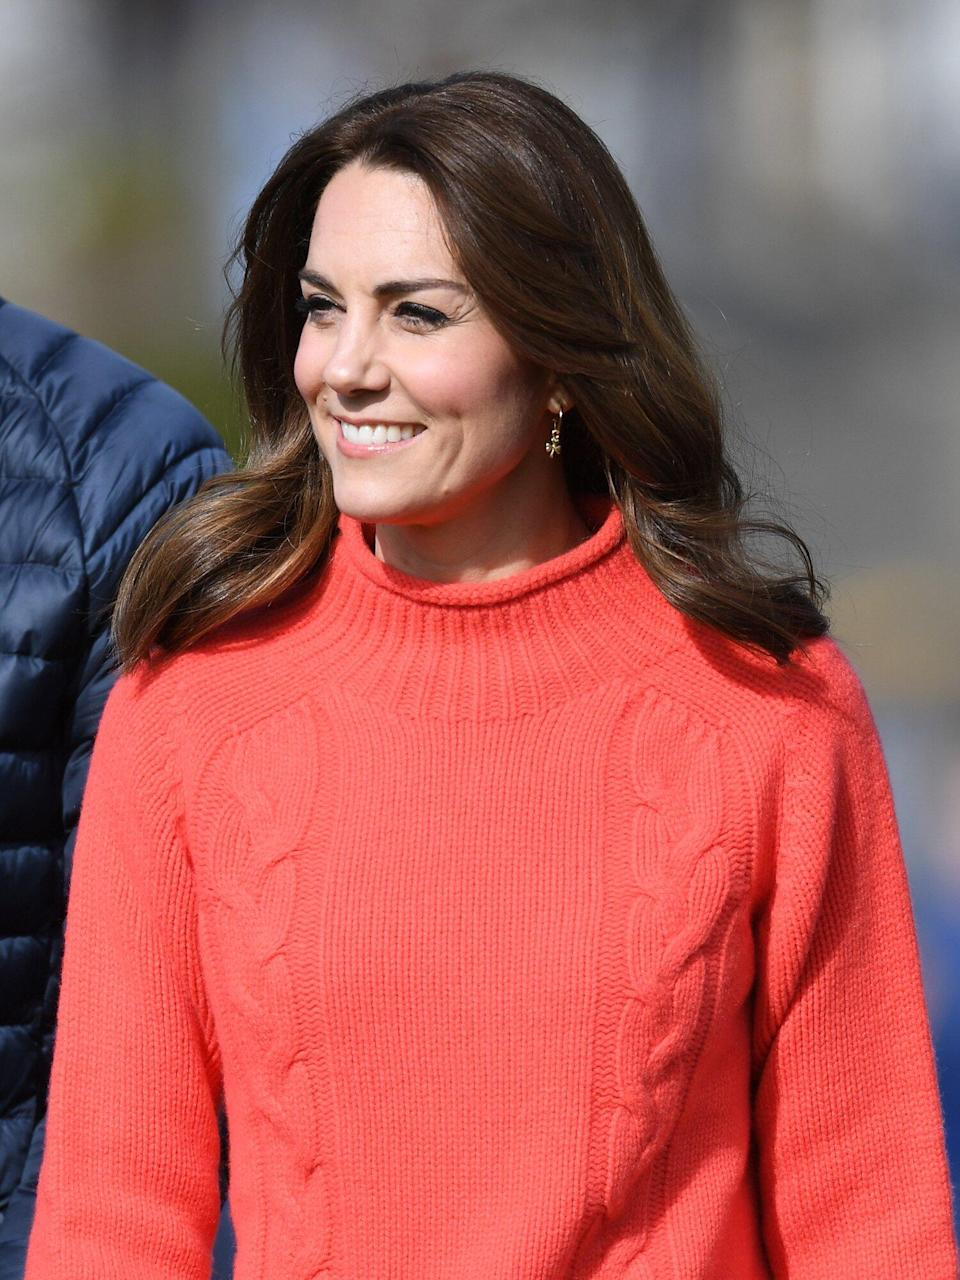 Kate Middleton's Latest Zoom Look Has Her Most Interesting Neckline Yet